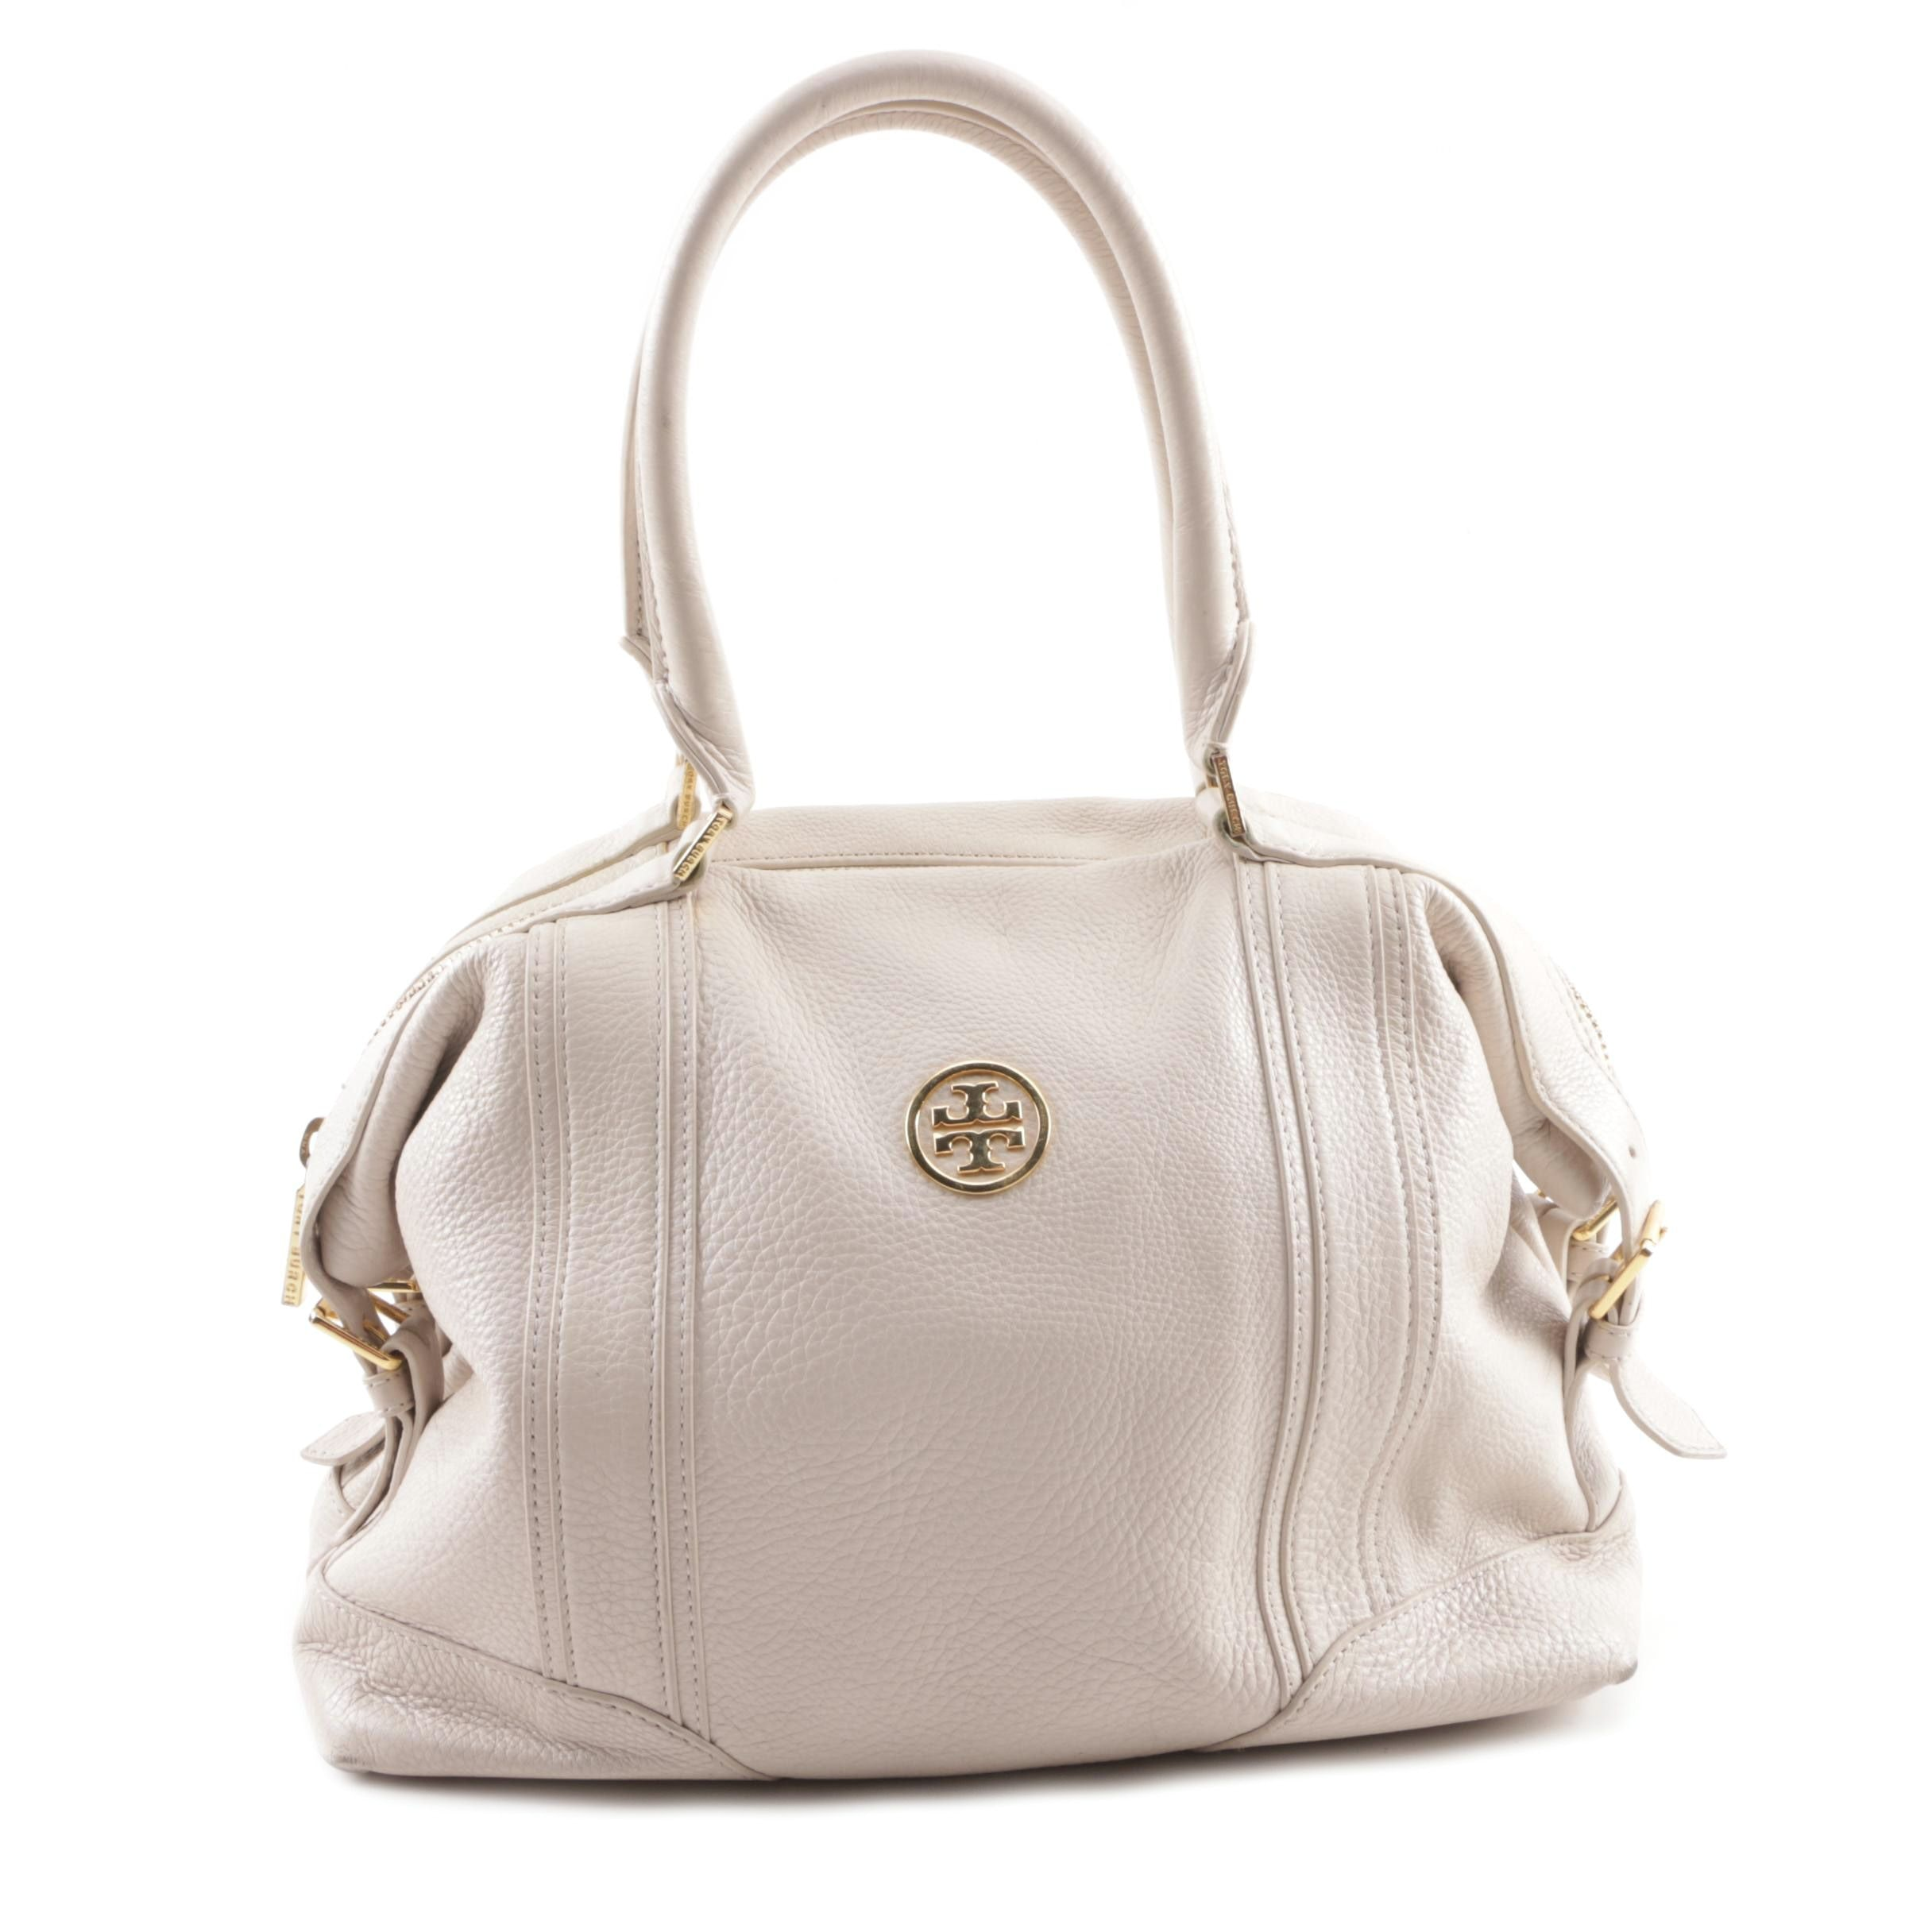 Tory Burch Off-White Pebbled Leather Satchel